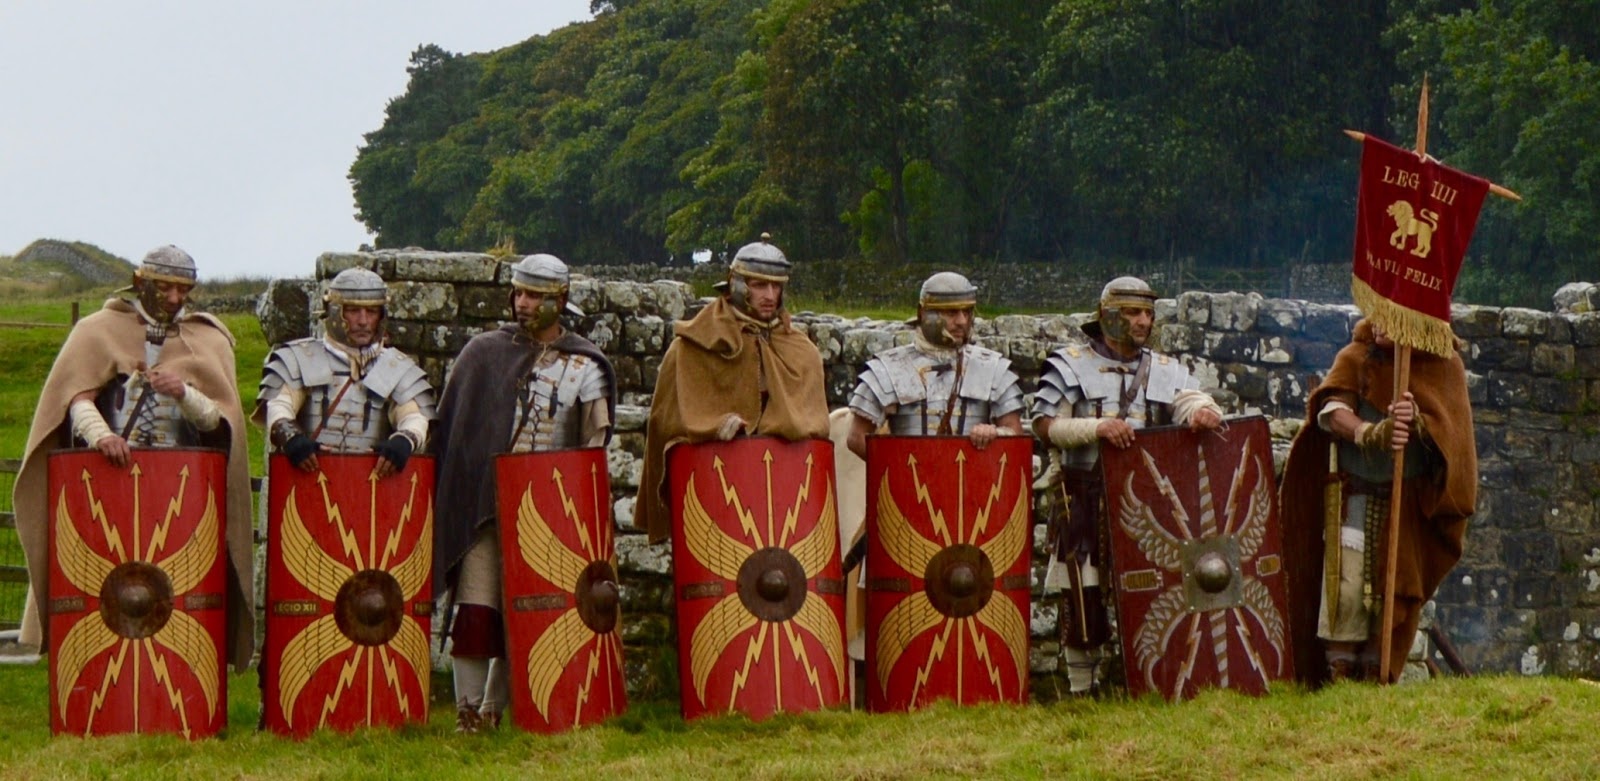 Hadrian's Wall Live 2016 | Birdoswald Roman Fort & Housesteads - A Review  - Roman Soldiers along Hadrian's wall